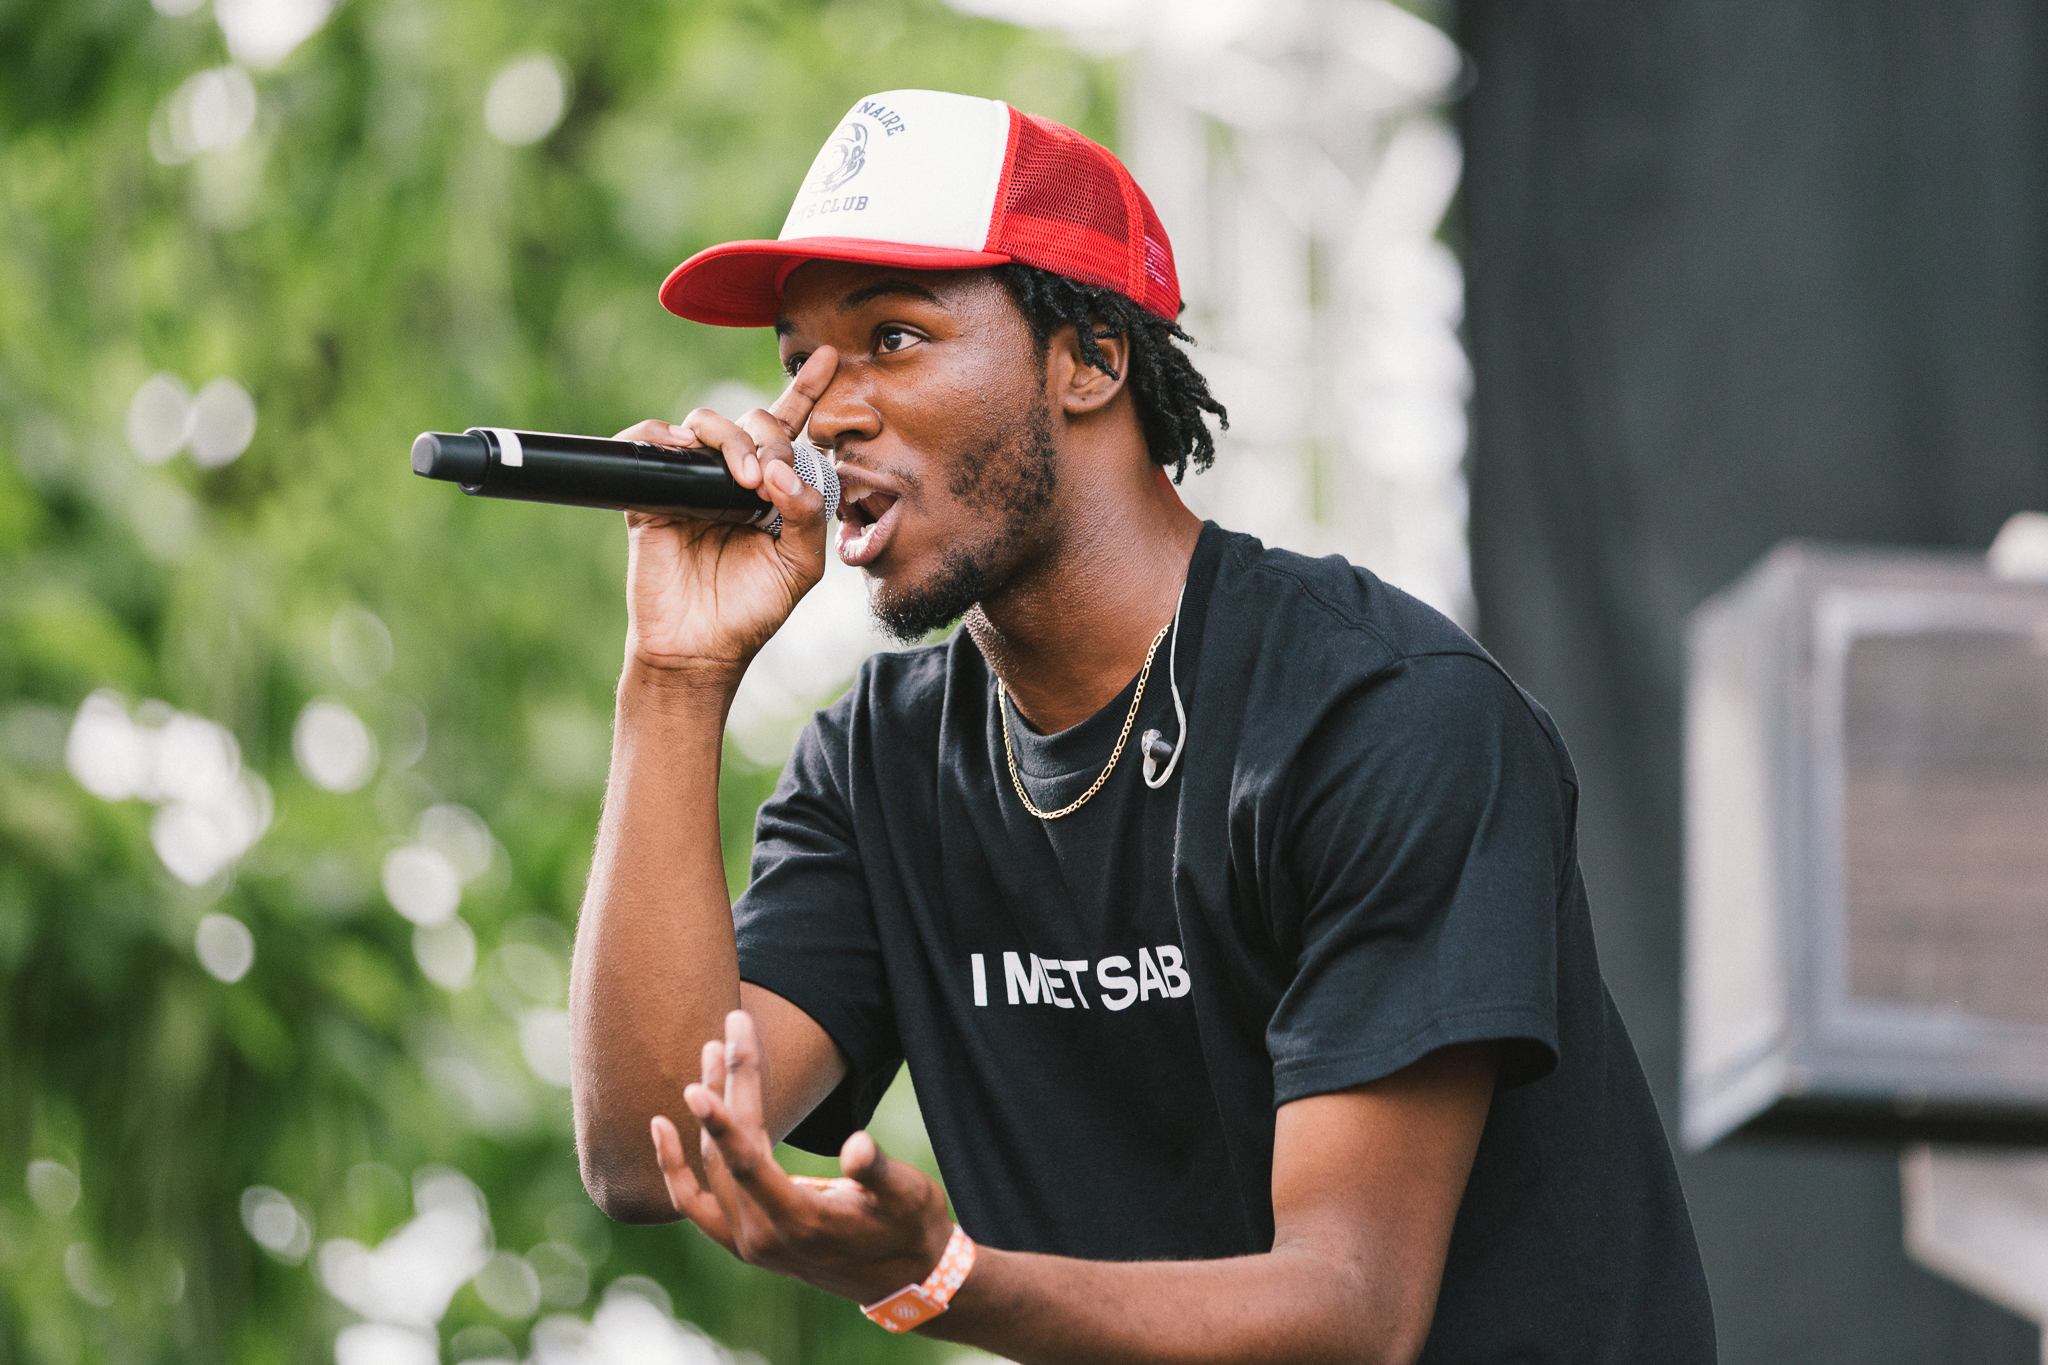 Photos from Pitchfork Music Festival 2018, Friday